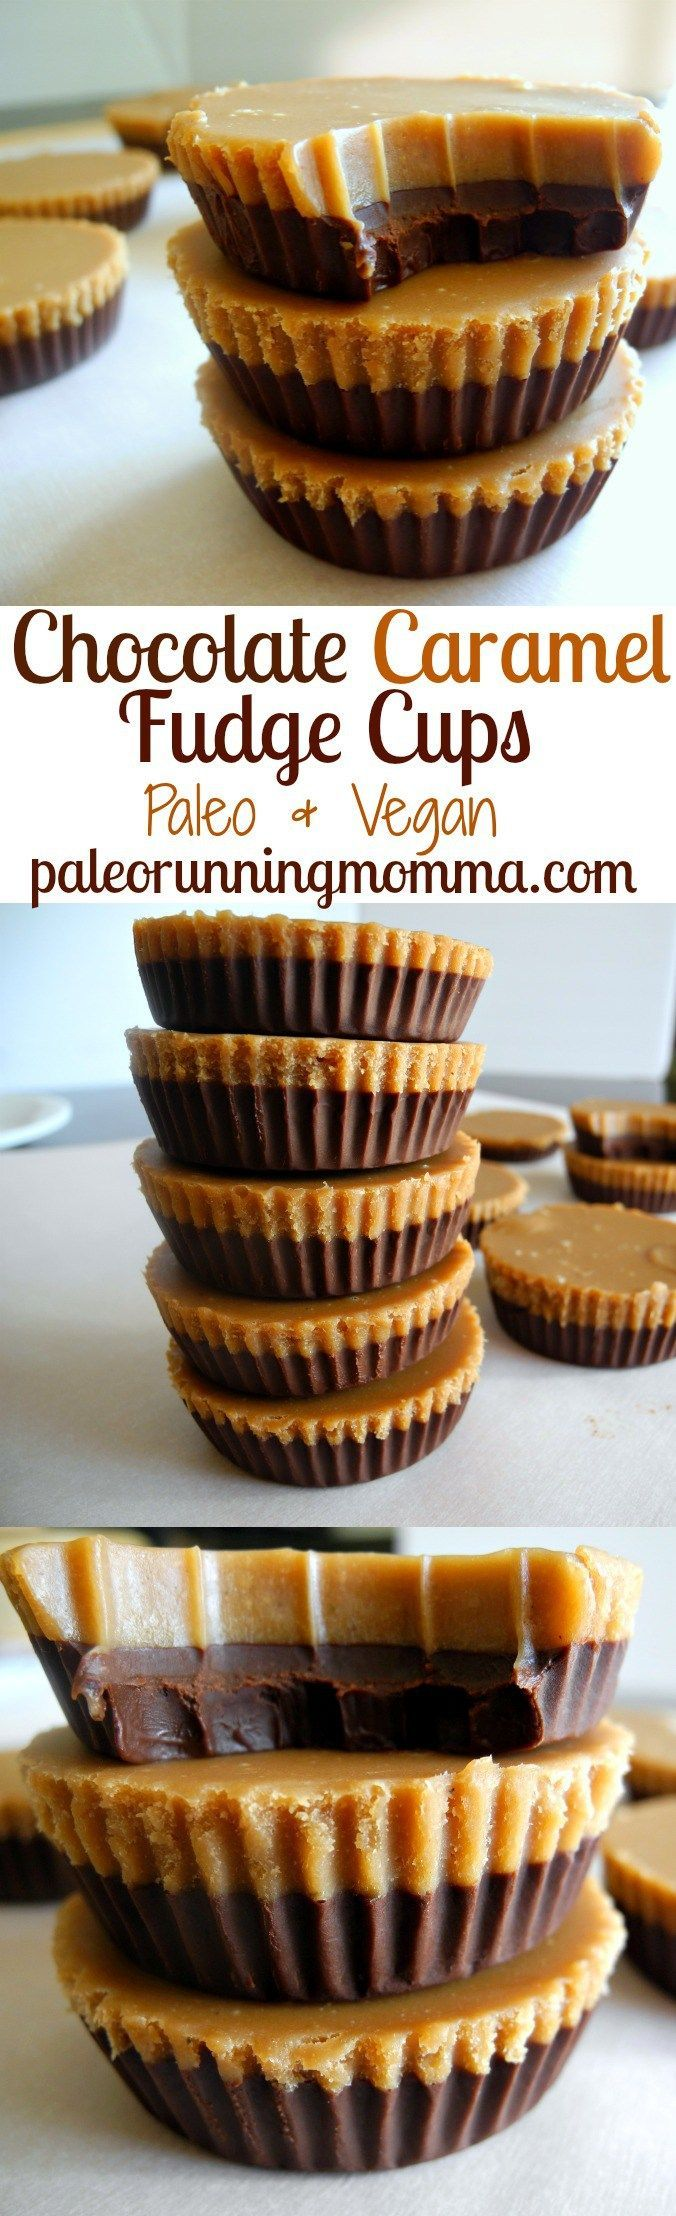 Paleo, vegan, easy to make and fast! These chocolate caramel fudge cups are out of this world incredible and impossible to resist! #vegan #guiltfree